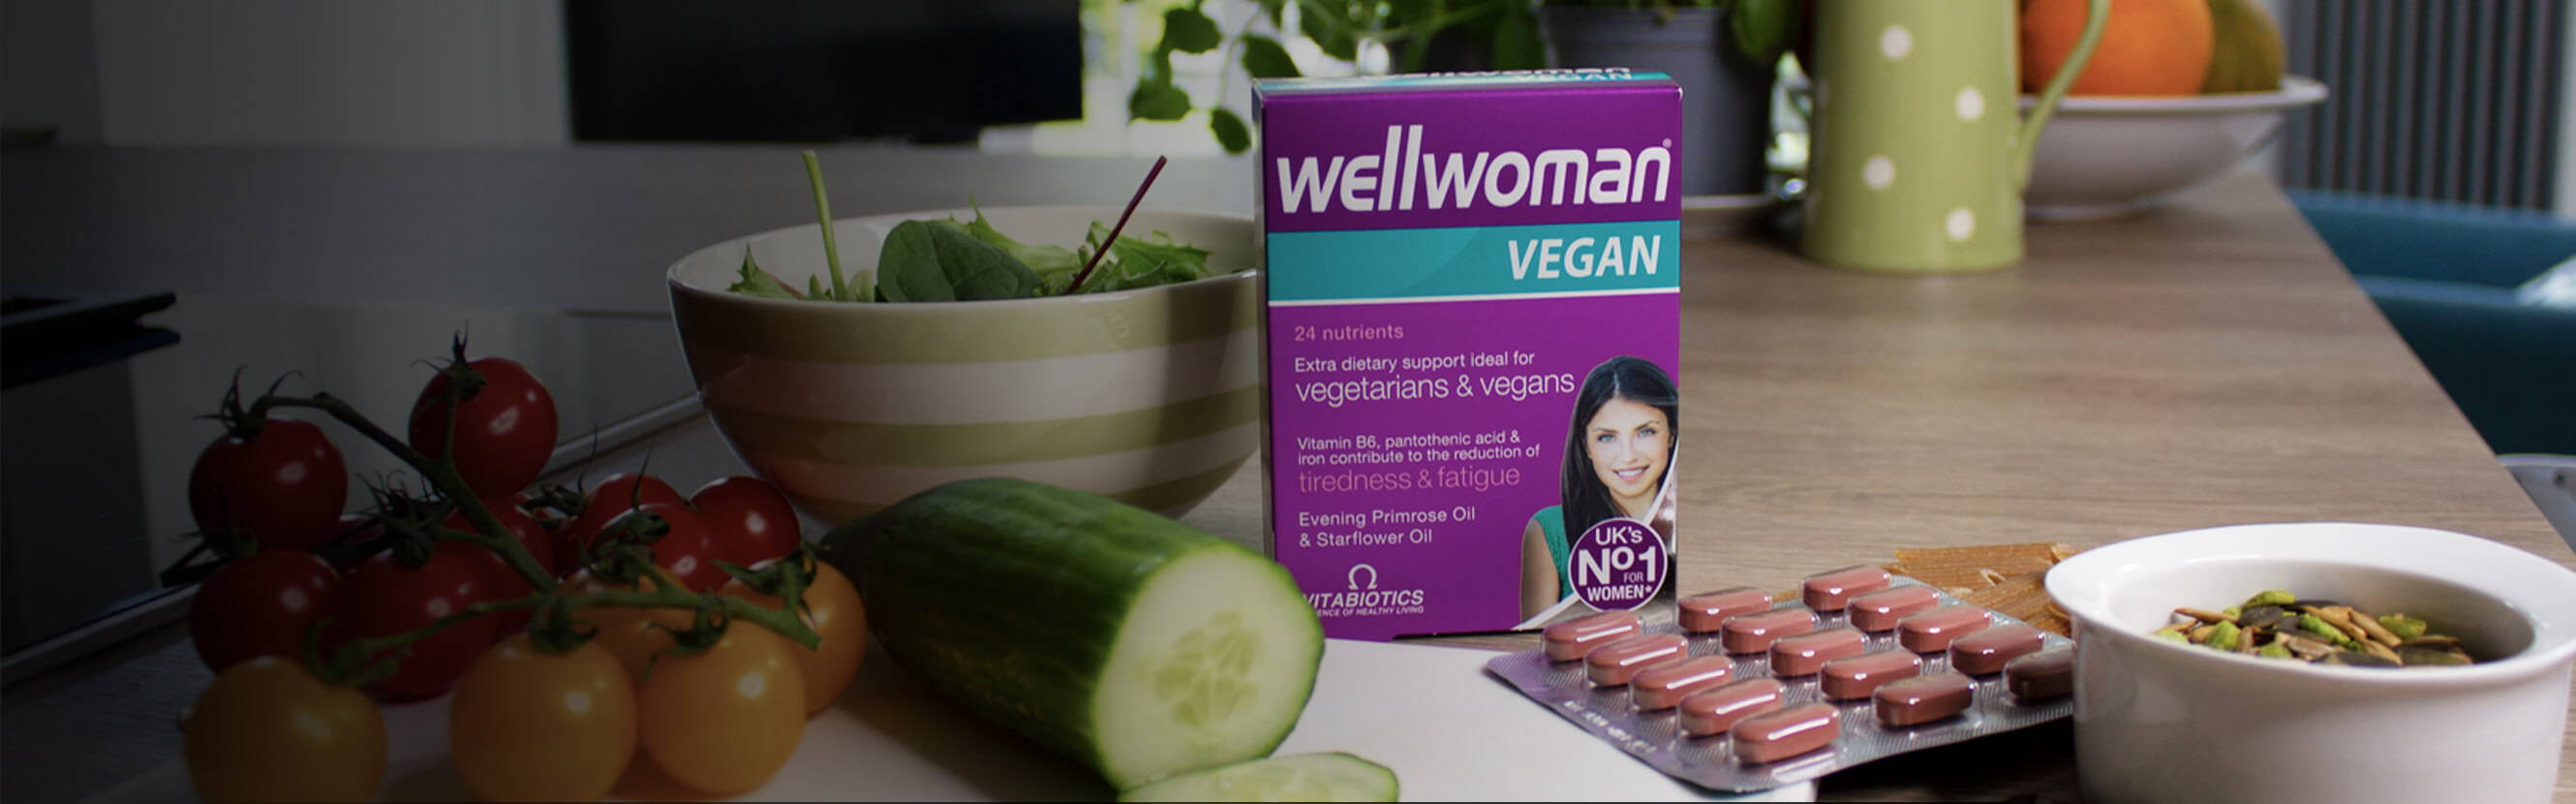 Wellwoman Vegan Pack Next To Vegetables & Nuts